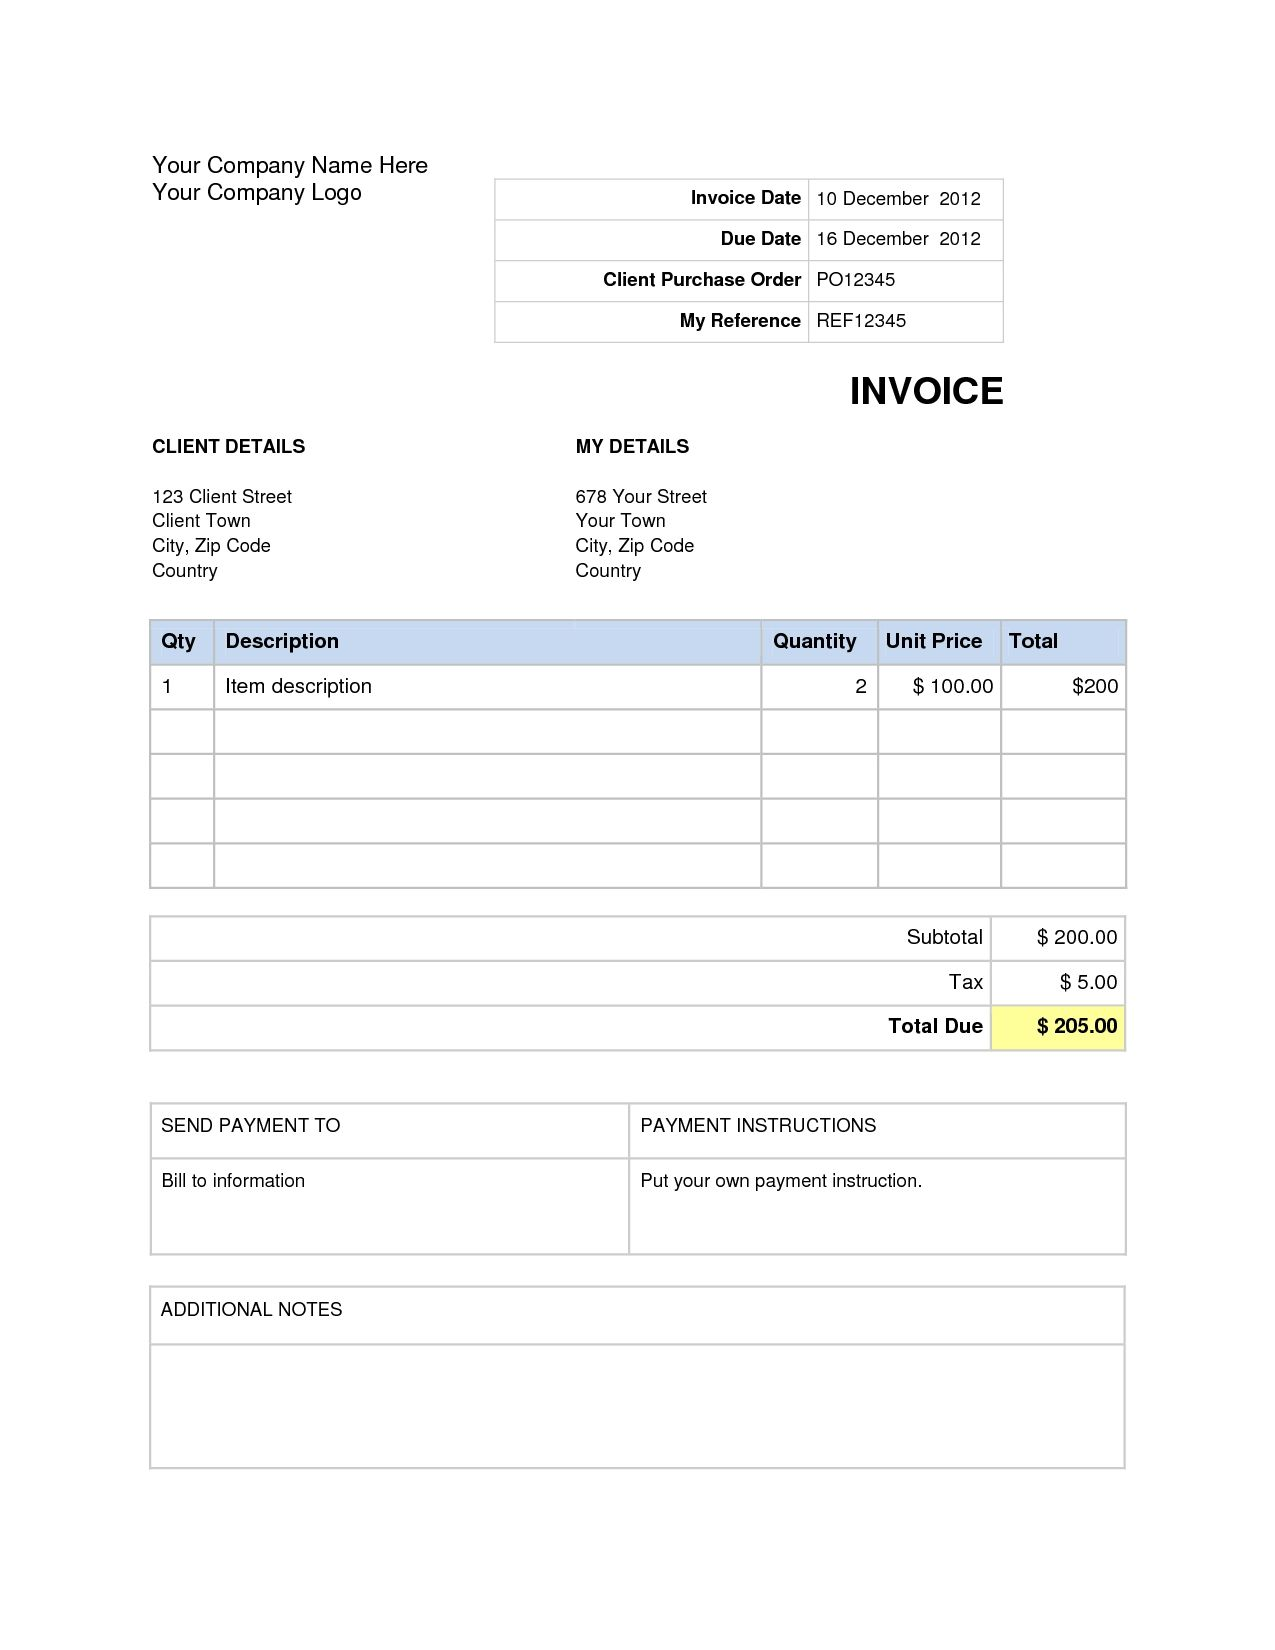 Invoice Template For Word Free Basic Invoice College Graduate Sample Resume  Examples Of A Good Essay Introduction Dental Hygiene Cover Letter Samples  Lawyer ...  Free Invoice Word Template